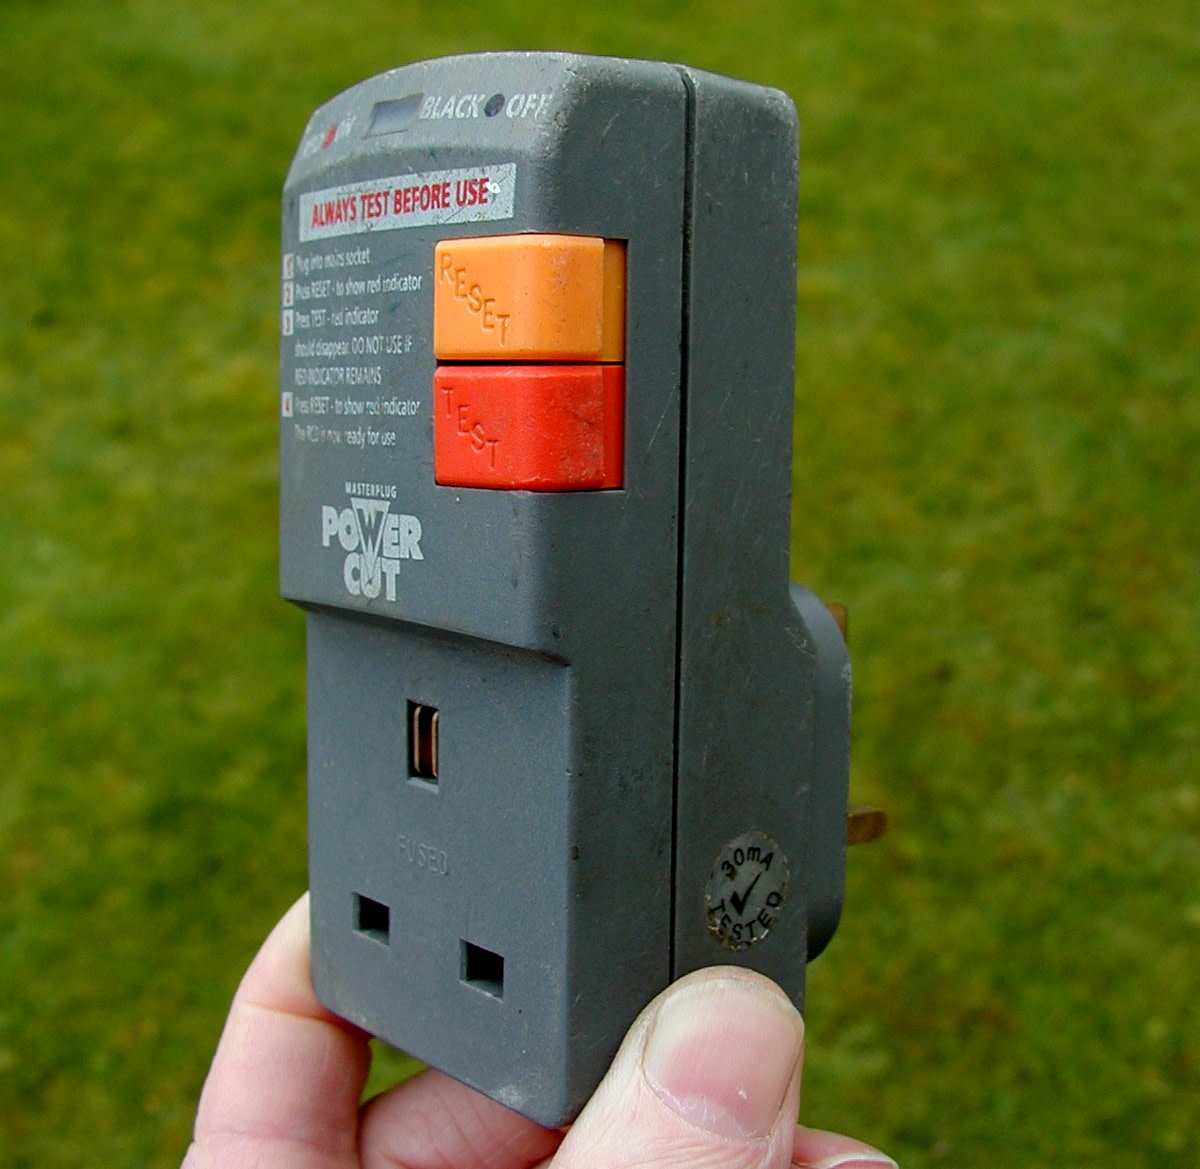 GFCI Outlets and Shock Prevention in the Home and Garden